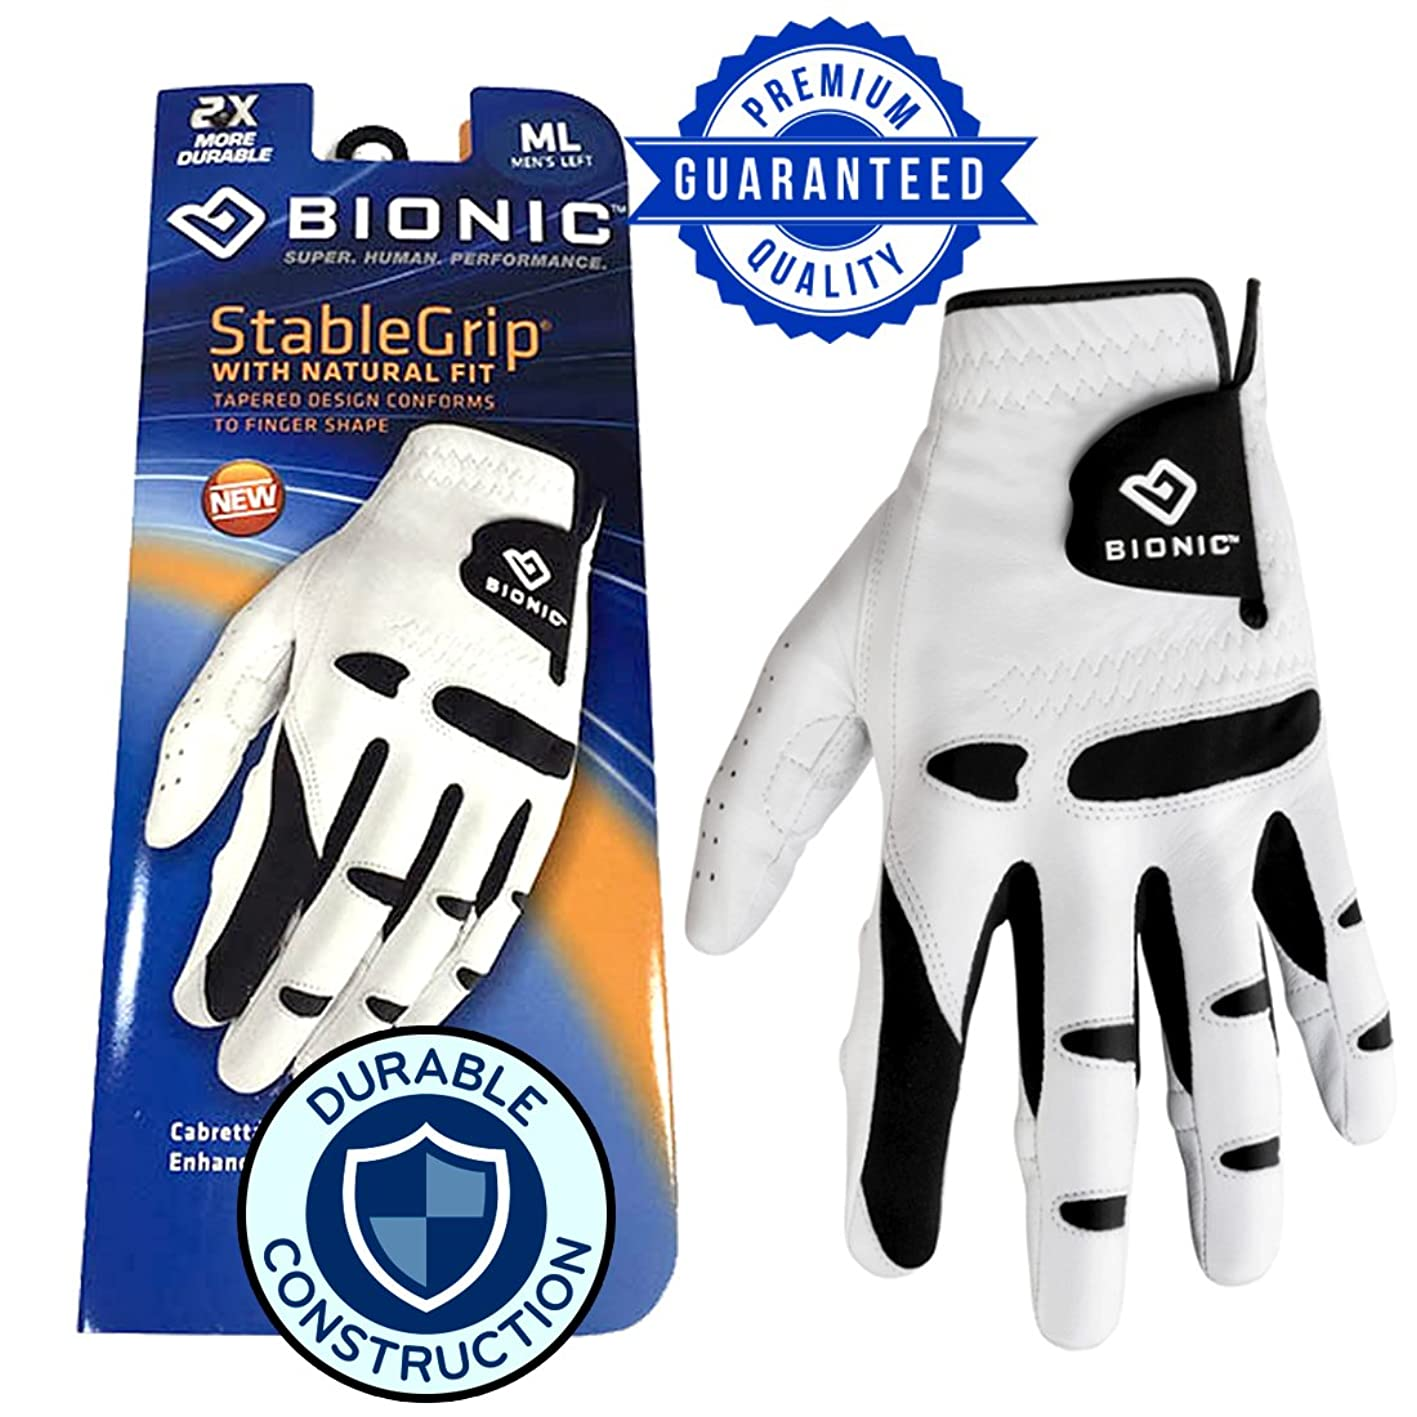 New & Improved 2X Long Lasting Bionic StableGrip Golf Glove - Patented Stable Grip Genuine Cabretta Leather, Designed by Orthopedic Surgeon! qviciktylfy389